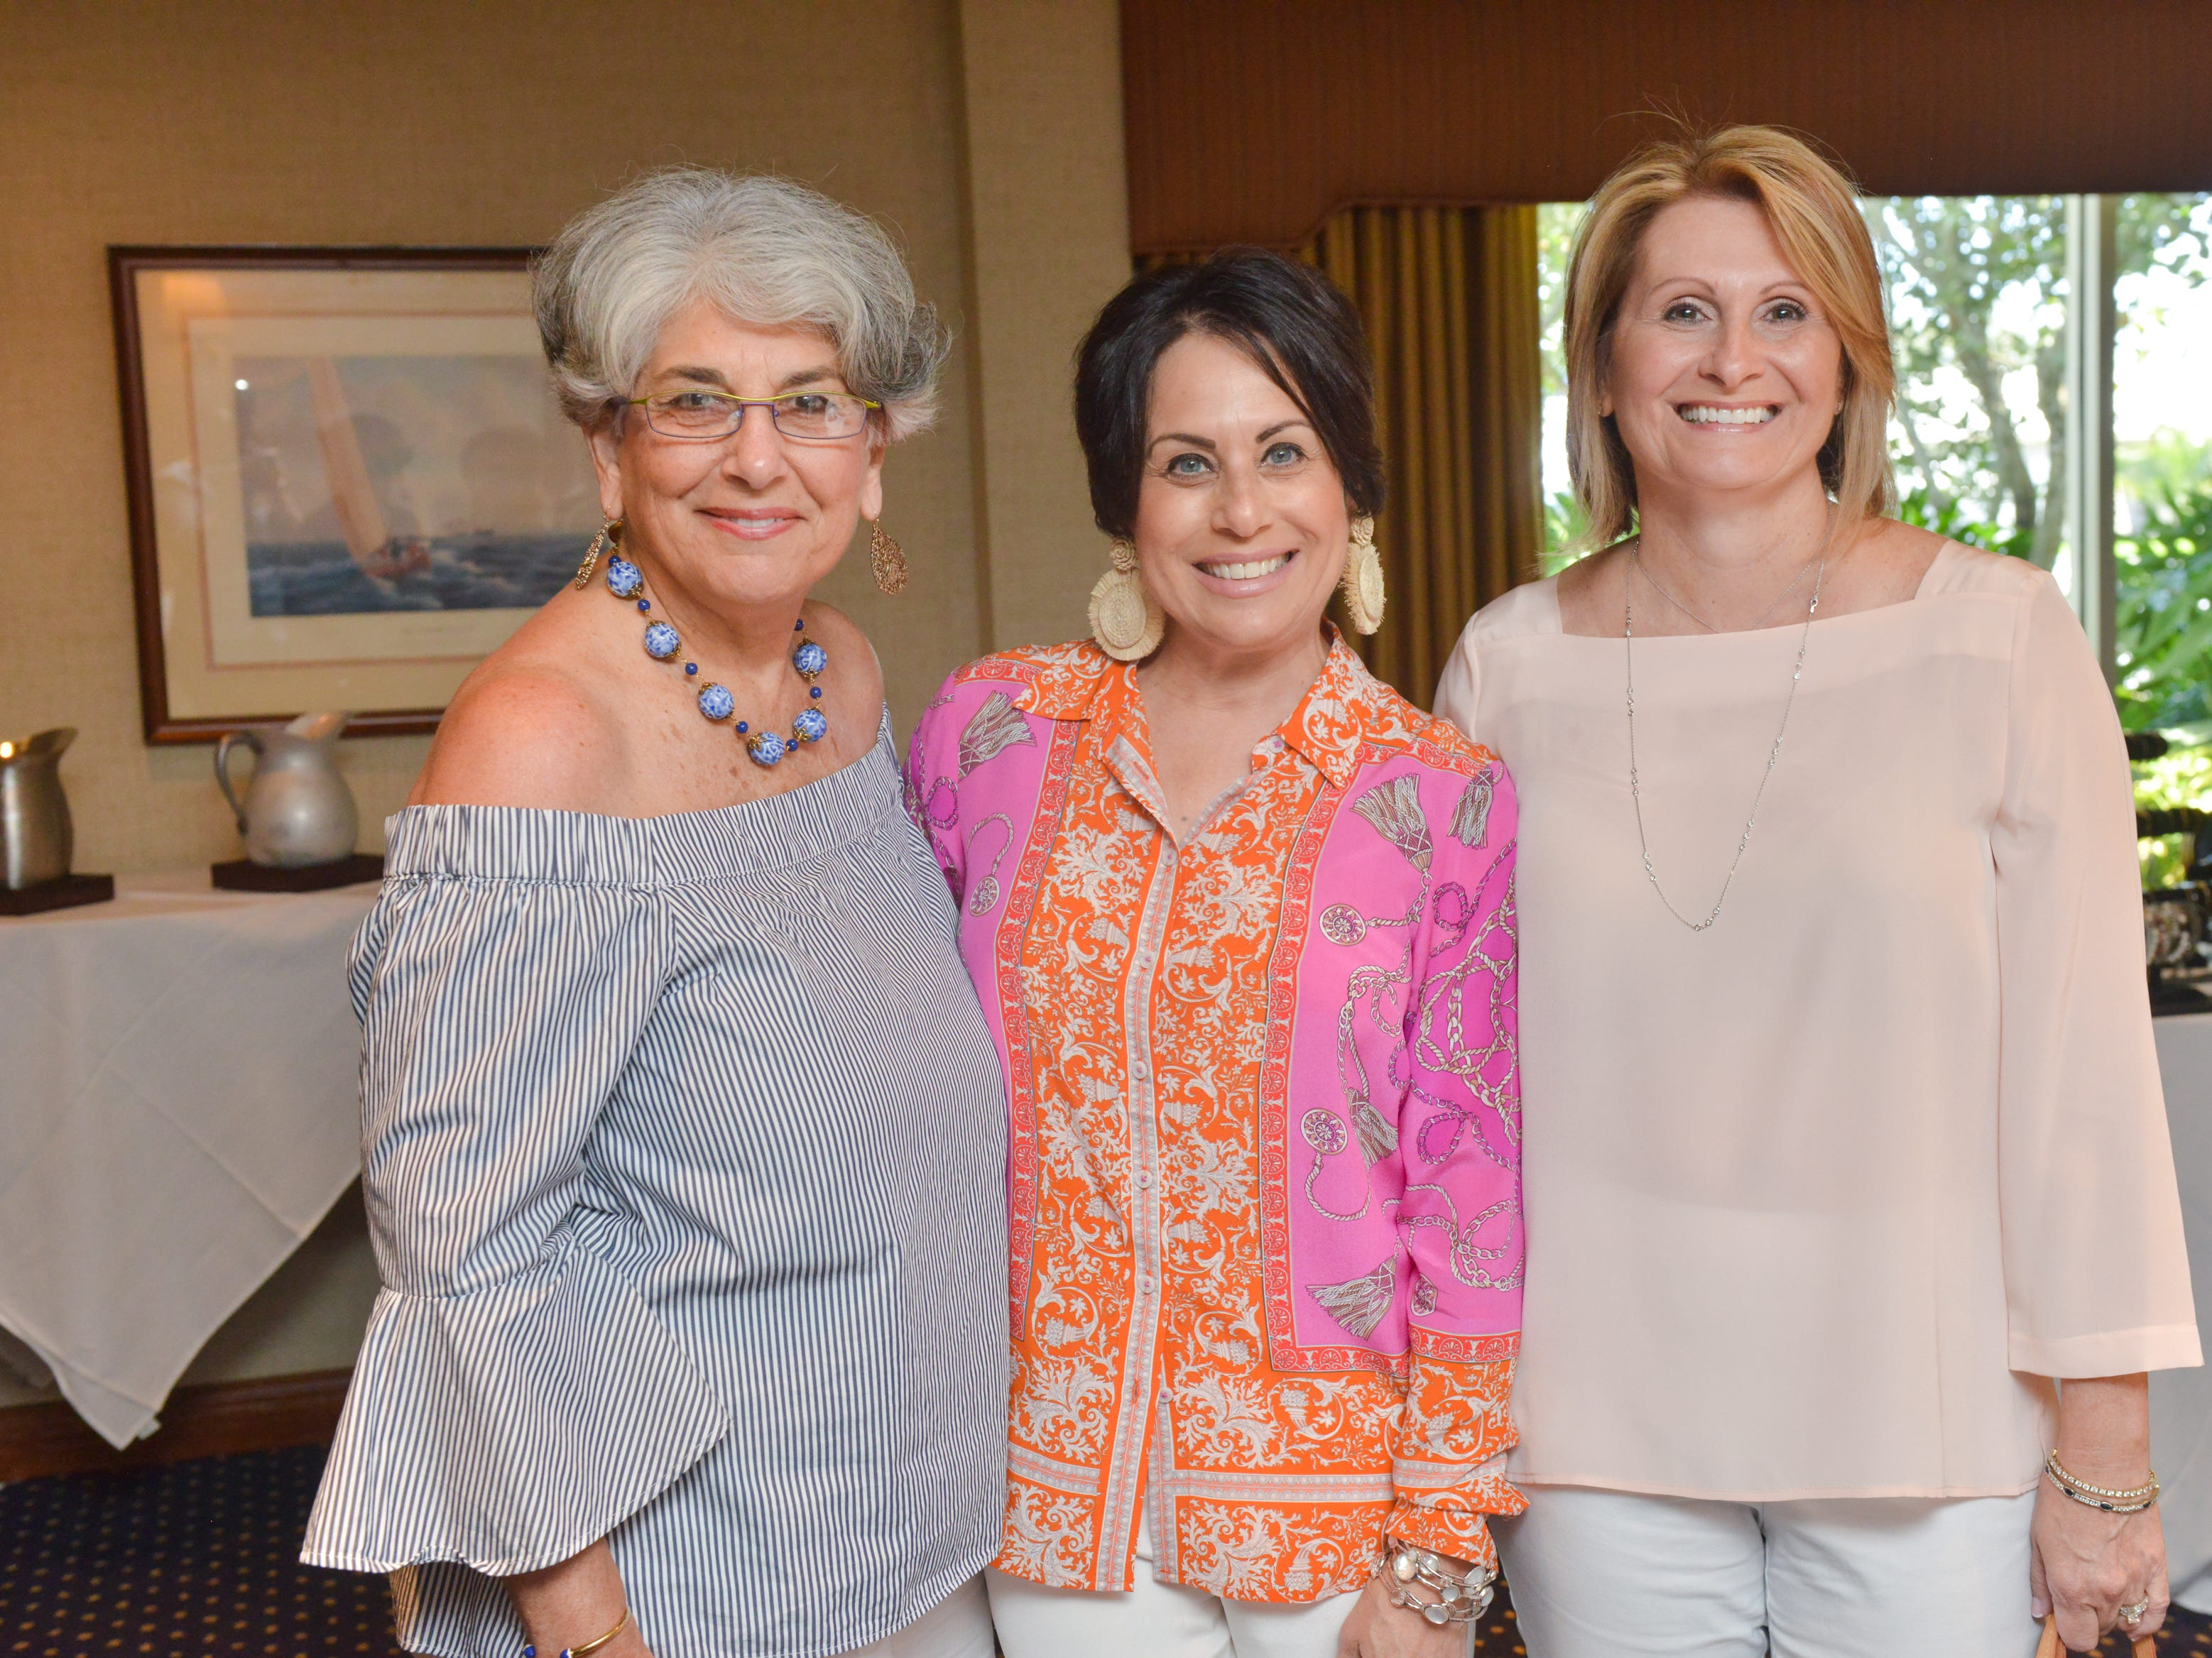 Joan Berrios, Rita Moreno and Jerri Figueroa at Friends of Sally's House luncheon at the Eau Gallie Yacht Club.